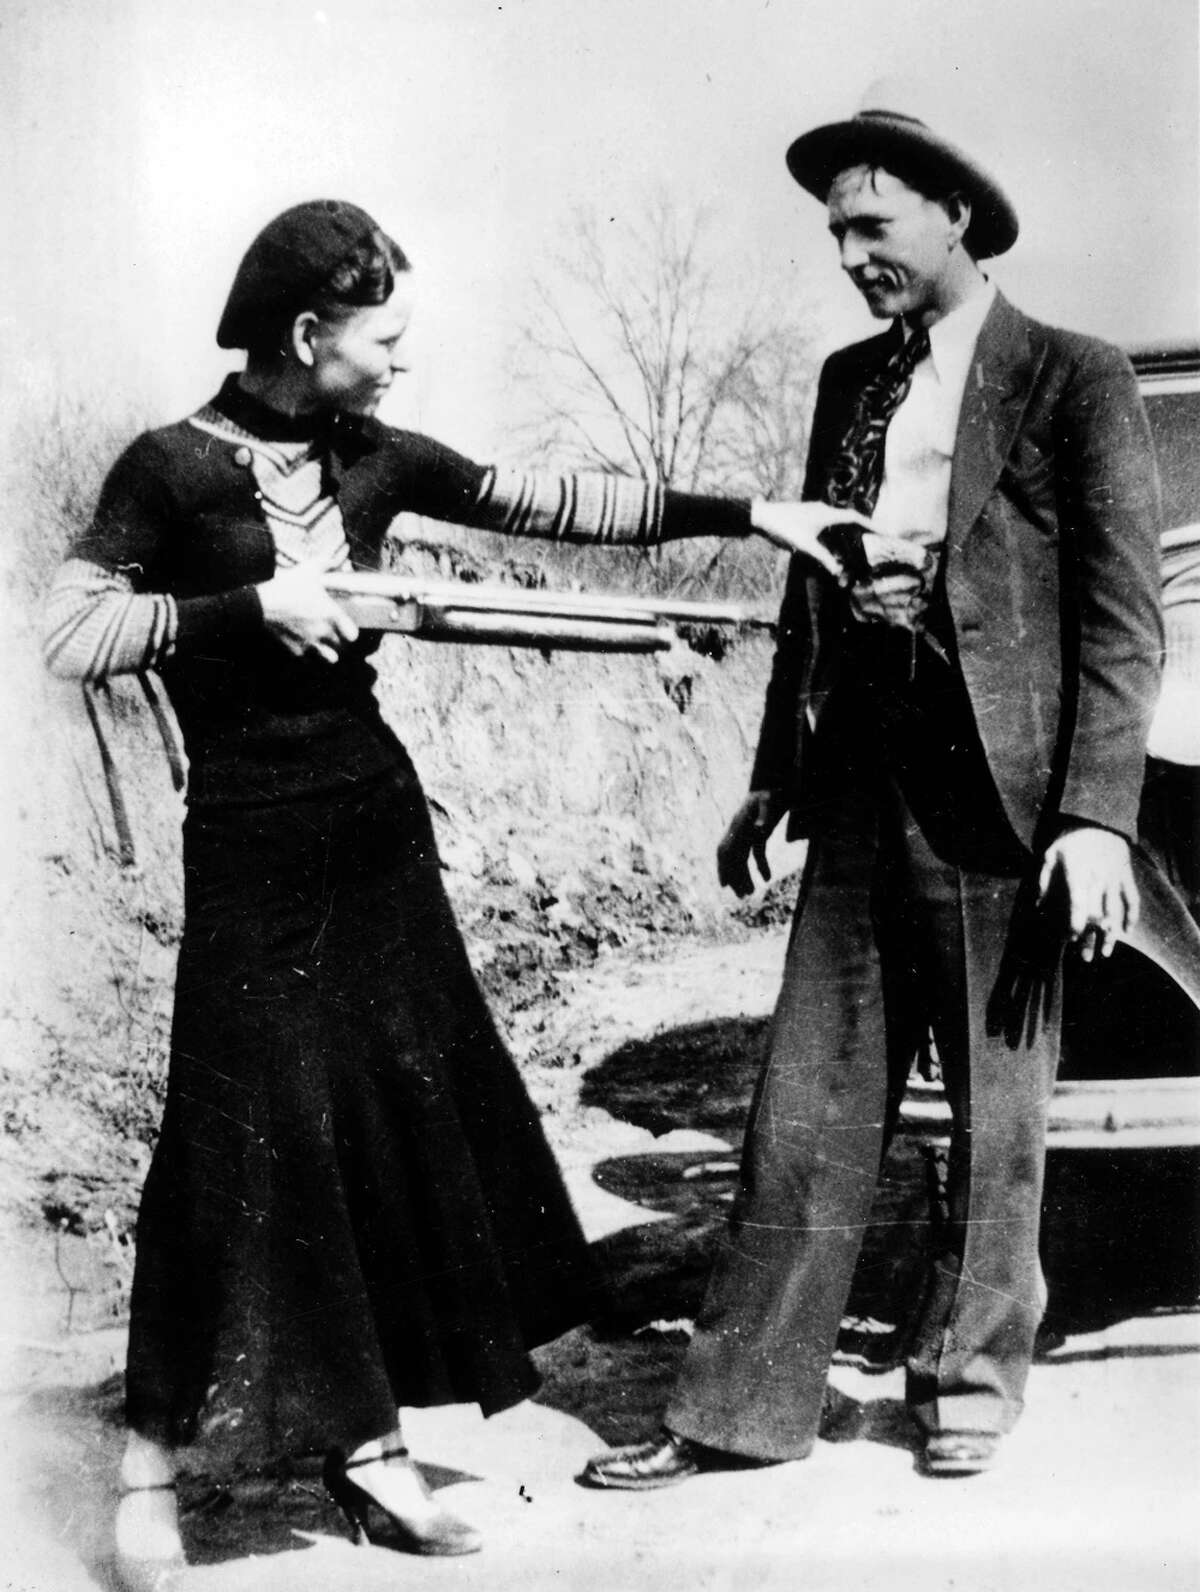 Infamous outlaws Bonnie Parker and Clyde Barrow are suspected of killing at least nine police officers and robbing ten banks and many more rural stores and gas stations before being gunned down by Texas and Louisiana police officers in 1934.